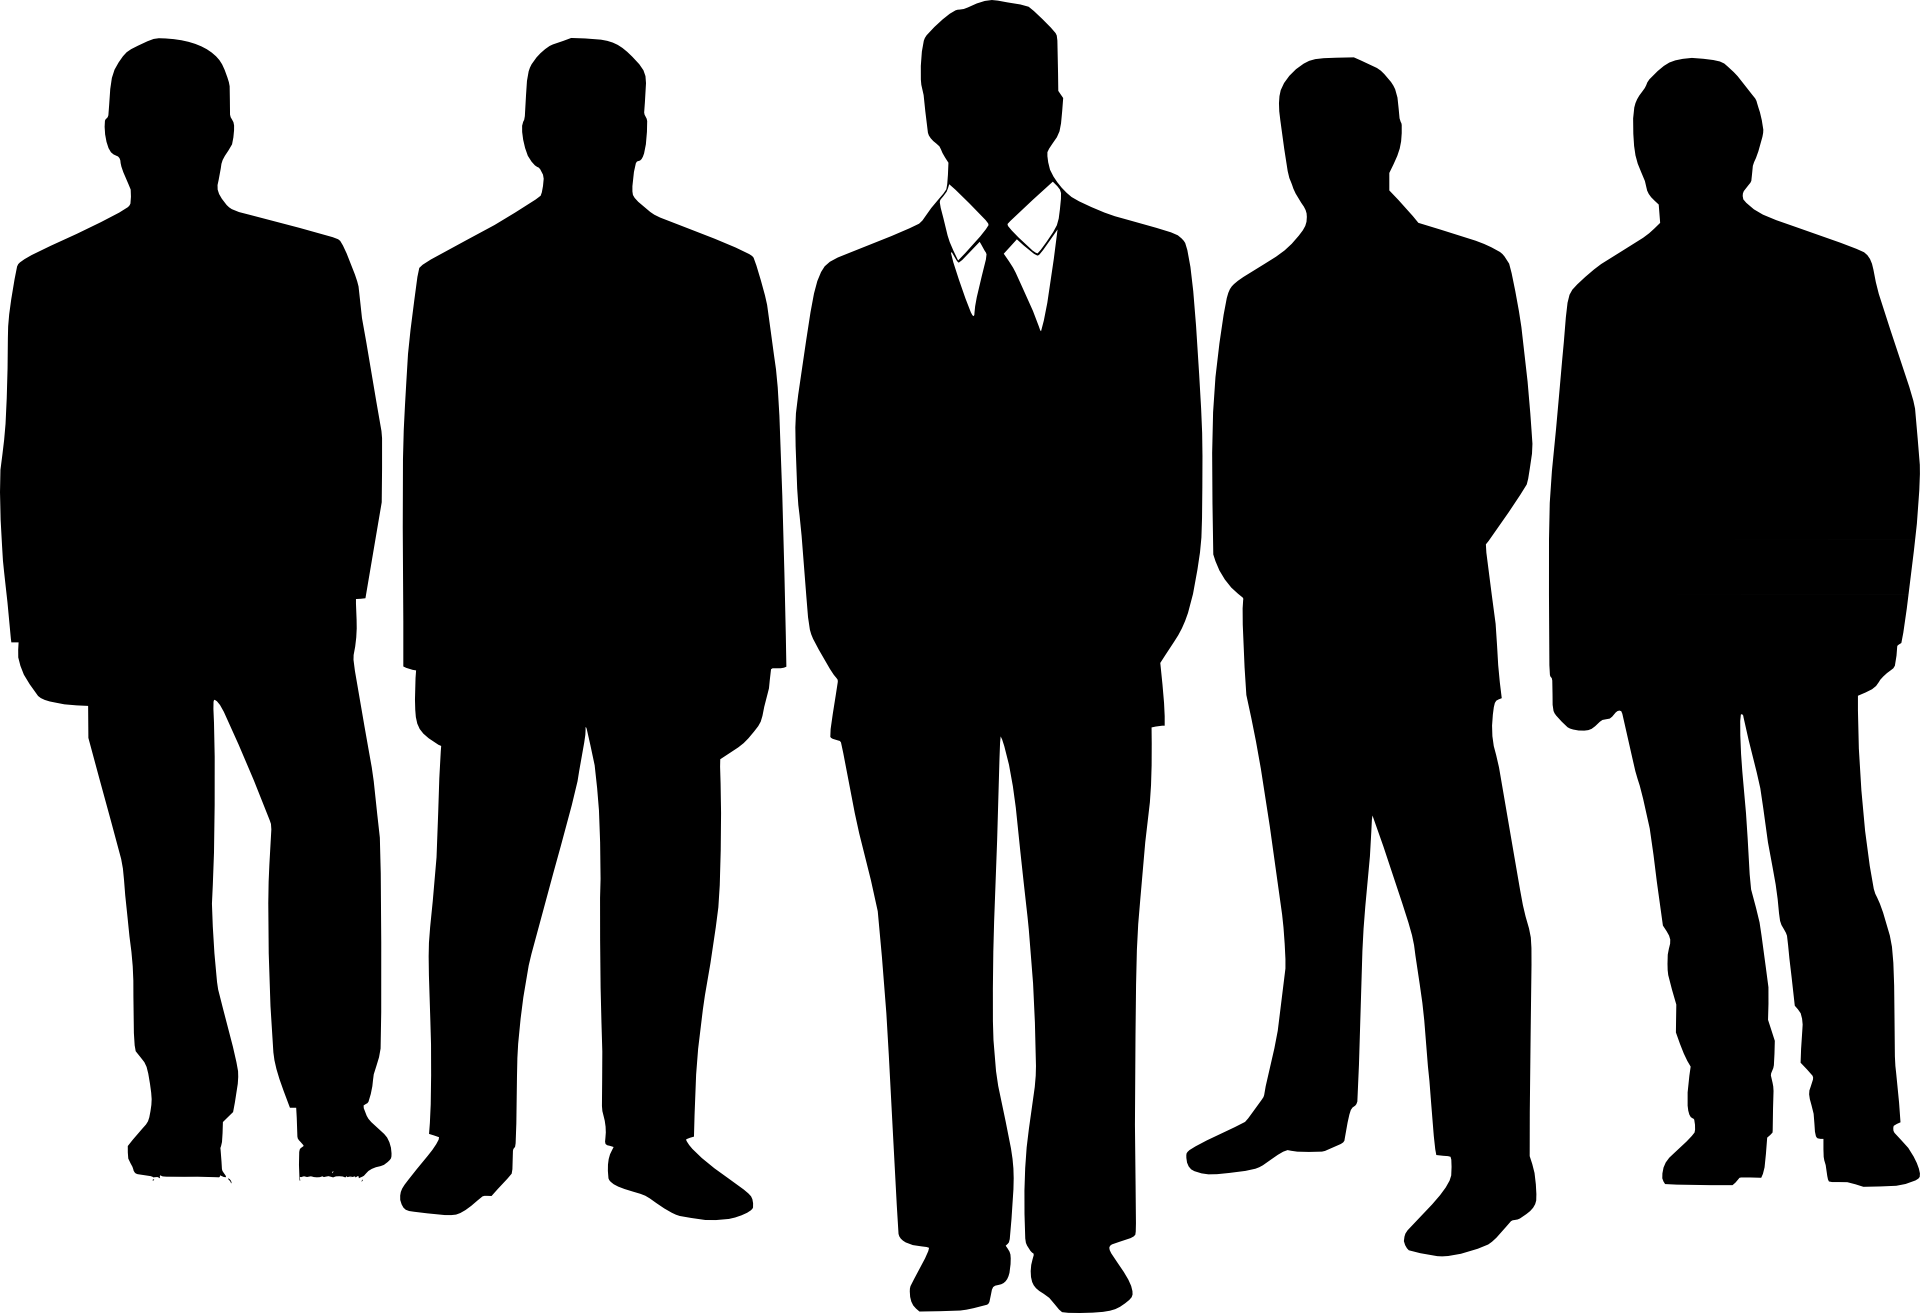 business people silhouette clipart panda free clipart images [ 1920 x 1313 Pixel ]